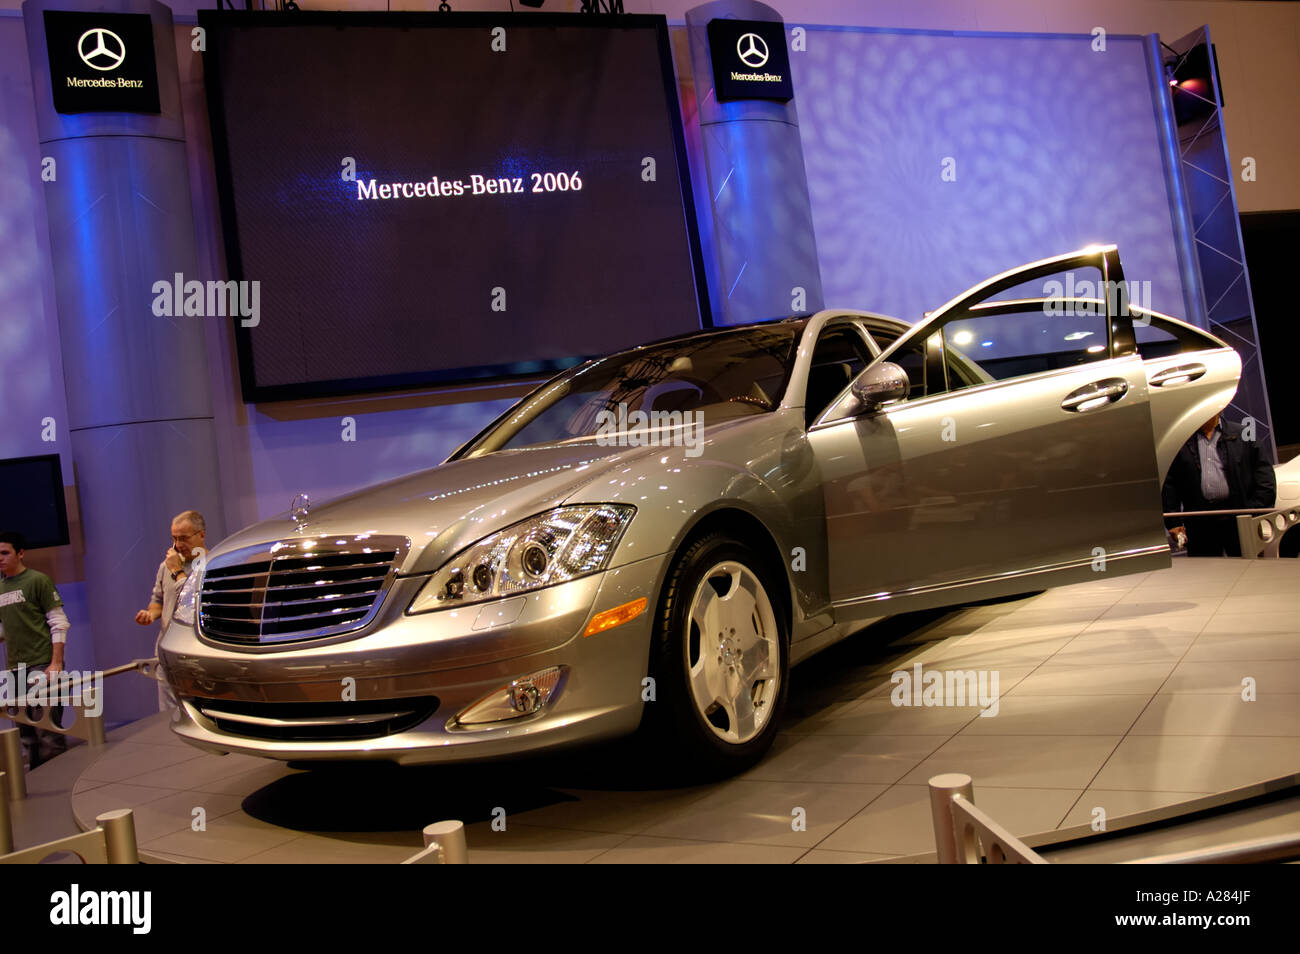 Southern California Los Angeles Convention Center International Auto Show Mercedes Benz luxury sedan 2006 model Stock Photo